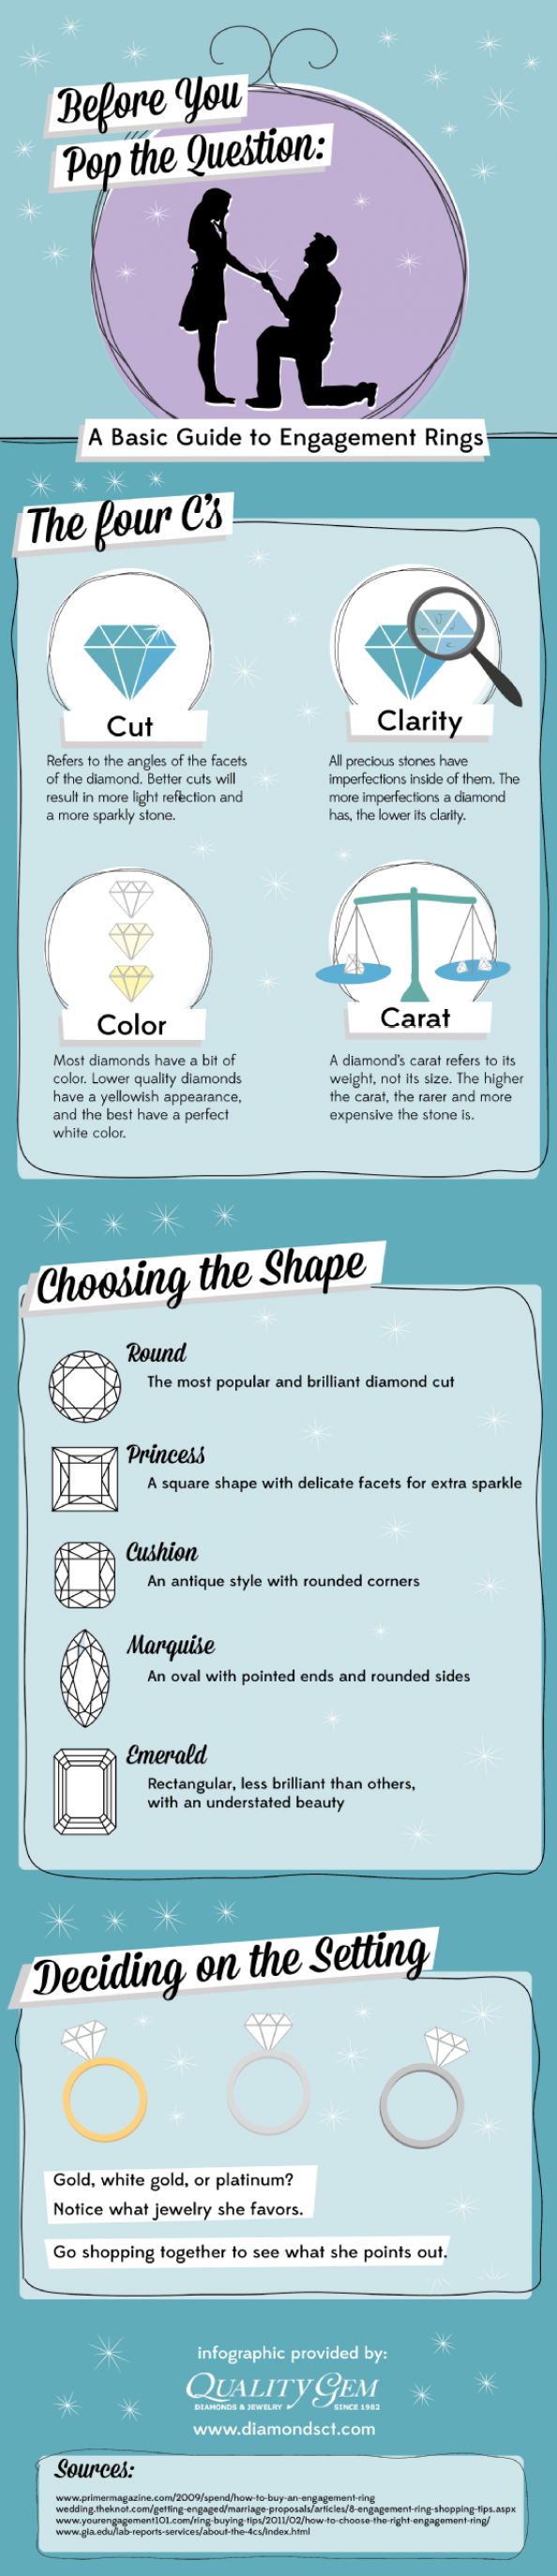 Before You Pop the Question: A Basic Guide to Engagement Rings Infographic